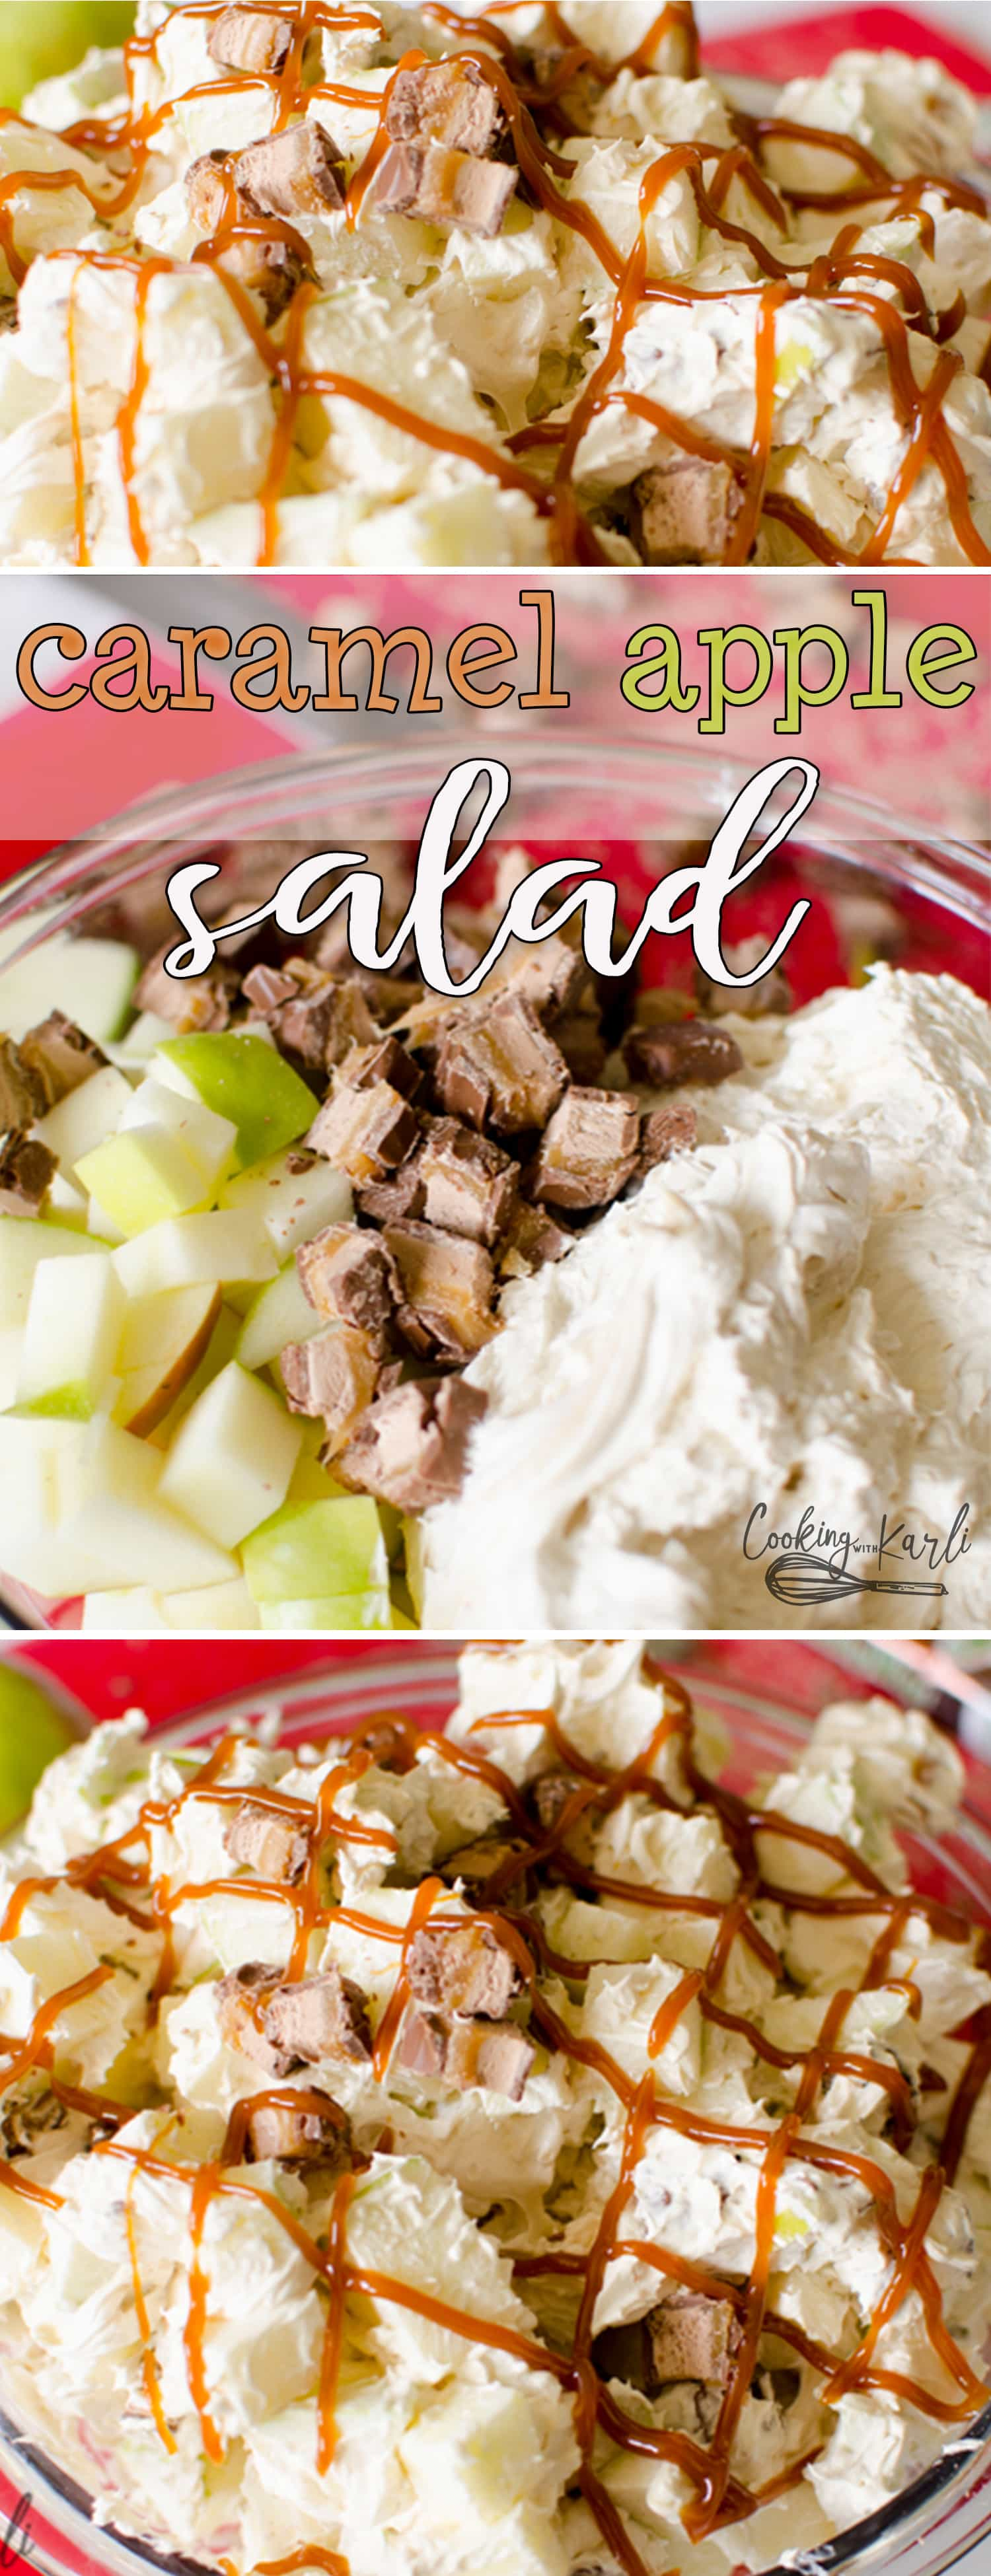 Caramel Apple Salad is a fluffy, creamy, subtly caramel flavored salad that is filled with tart Granny Smith Apples and Milky Way candy bars. The whole salad is drizzled with caramel sauce to finish it off. This classic salad is perfect for potlucks, holidays, family parties, or fall. |Cooking with Karli| #salad #sidedish #caramel #apple #candybar #recipe